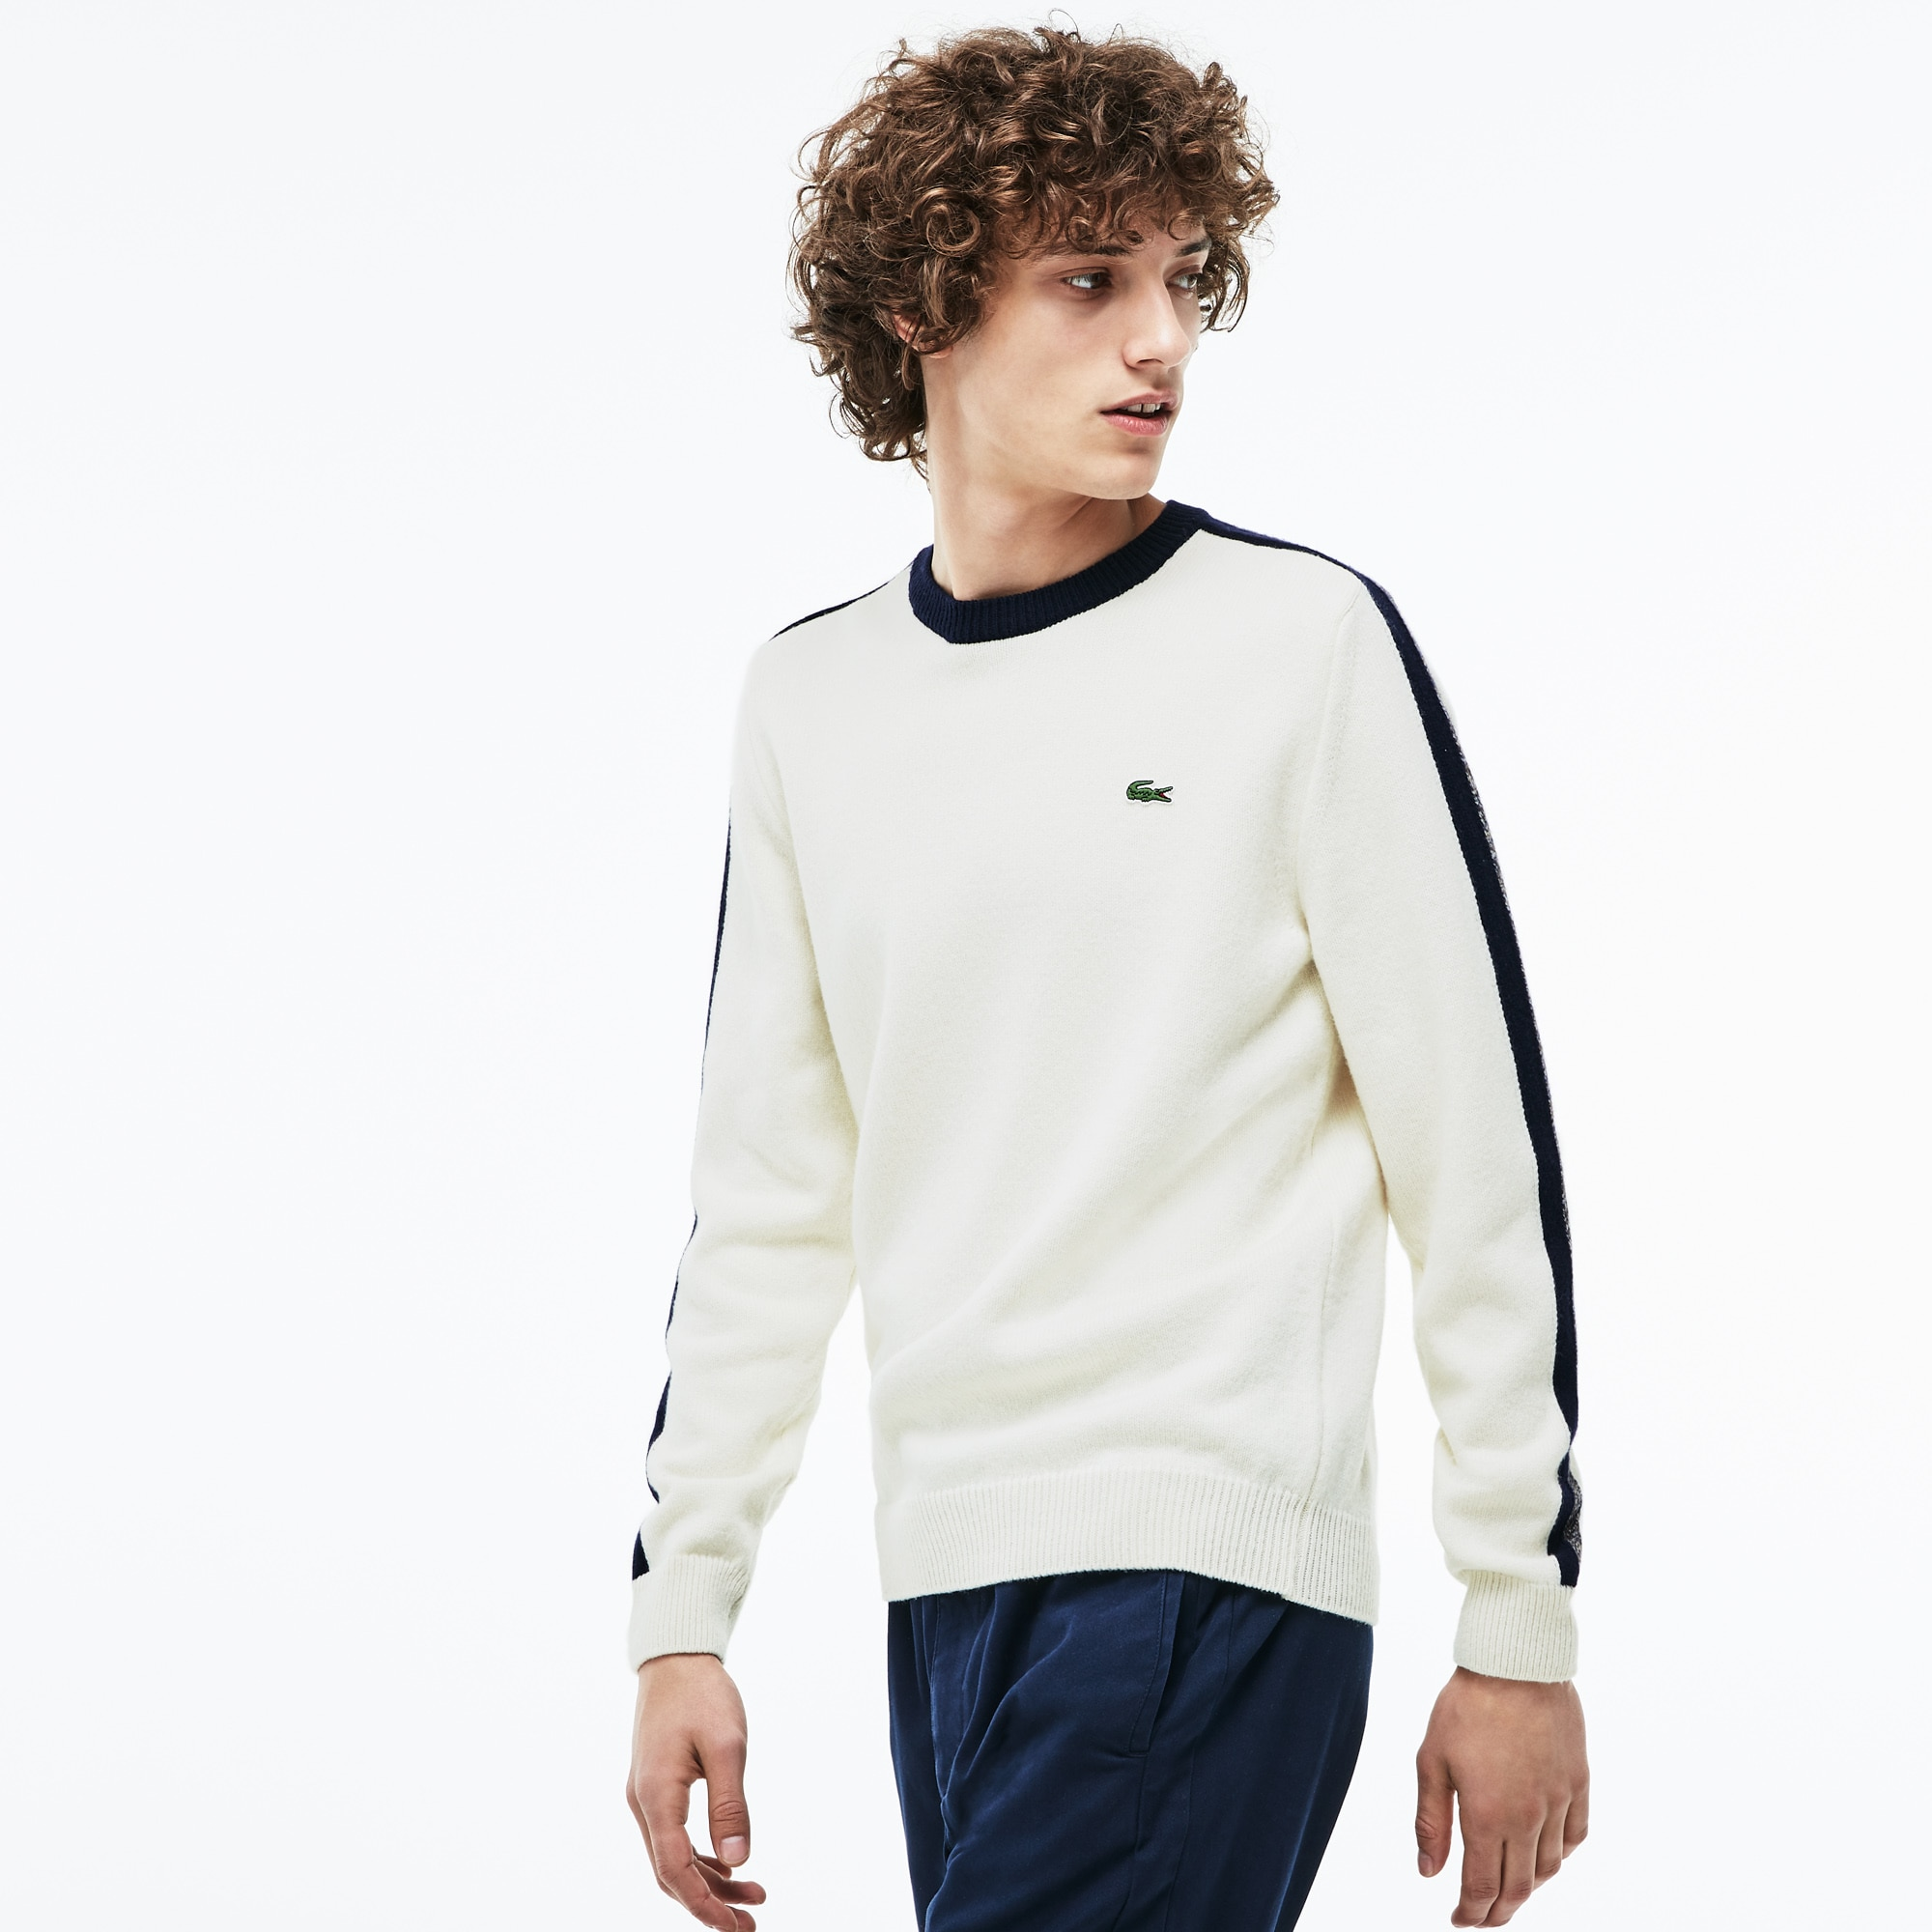 851cd3a969c881 Men's Made In France Crew Neck Contrast Band Jersey Sweater   LACOSTE